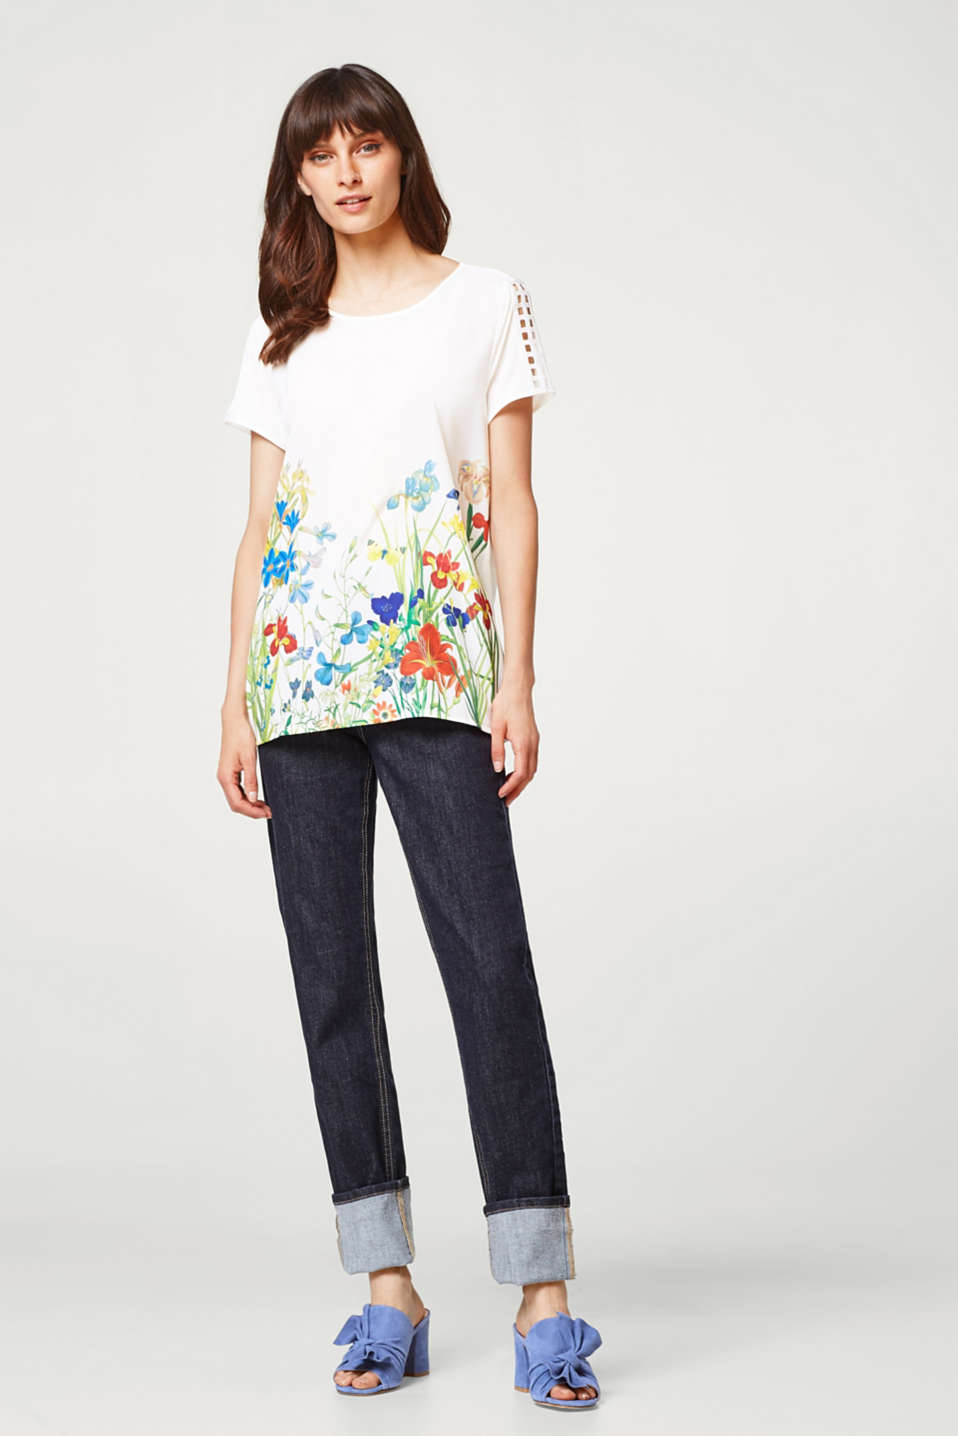 Top made of soft blended fabric with a floral print